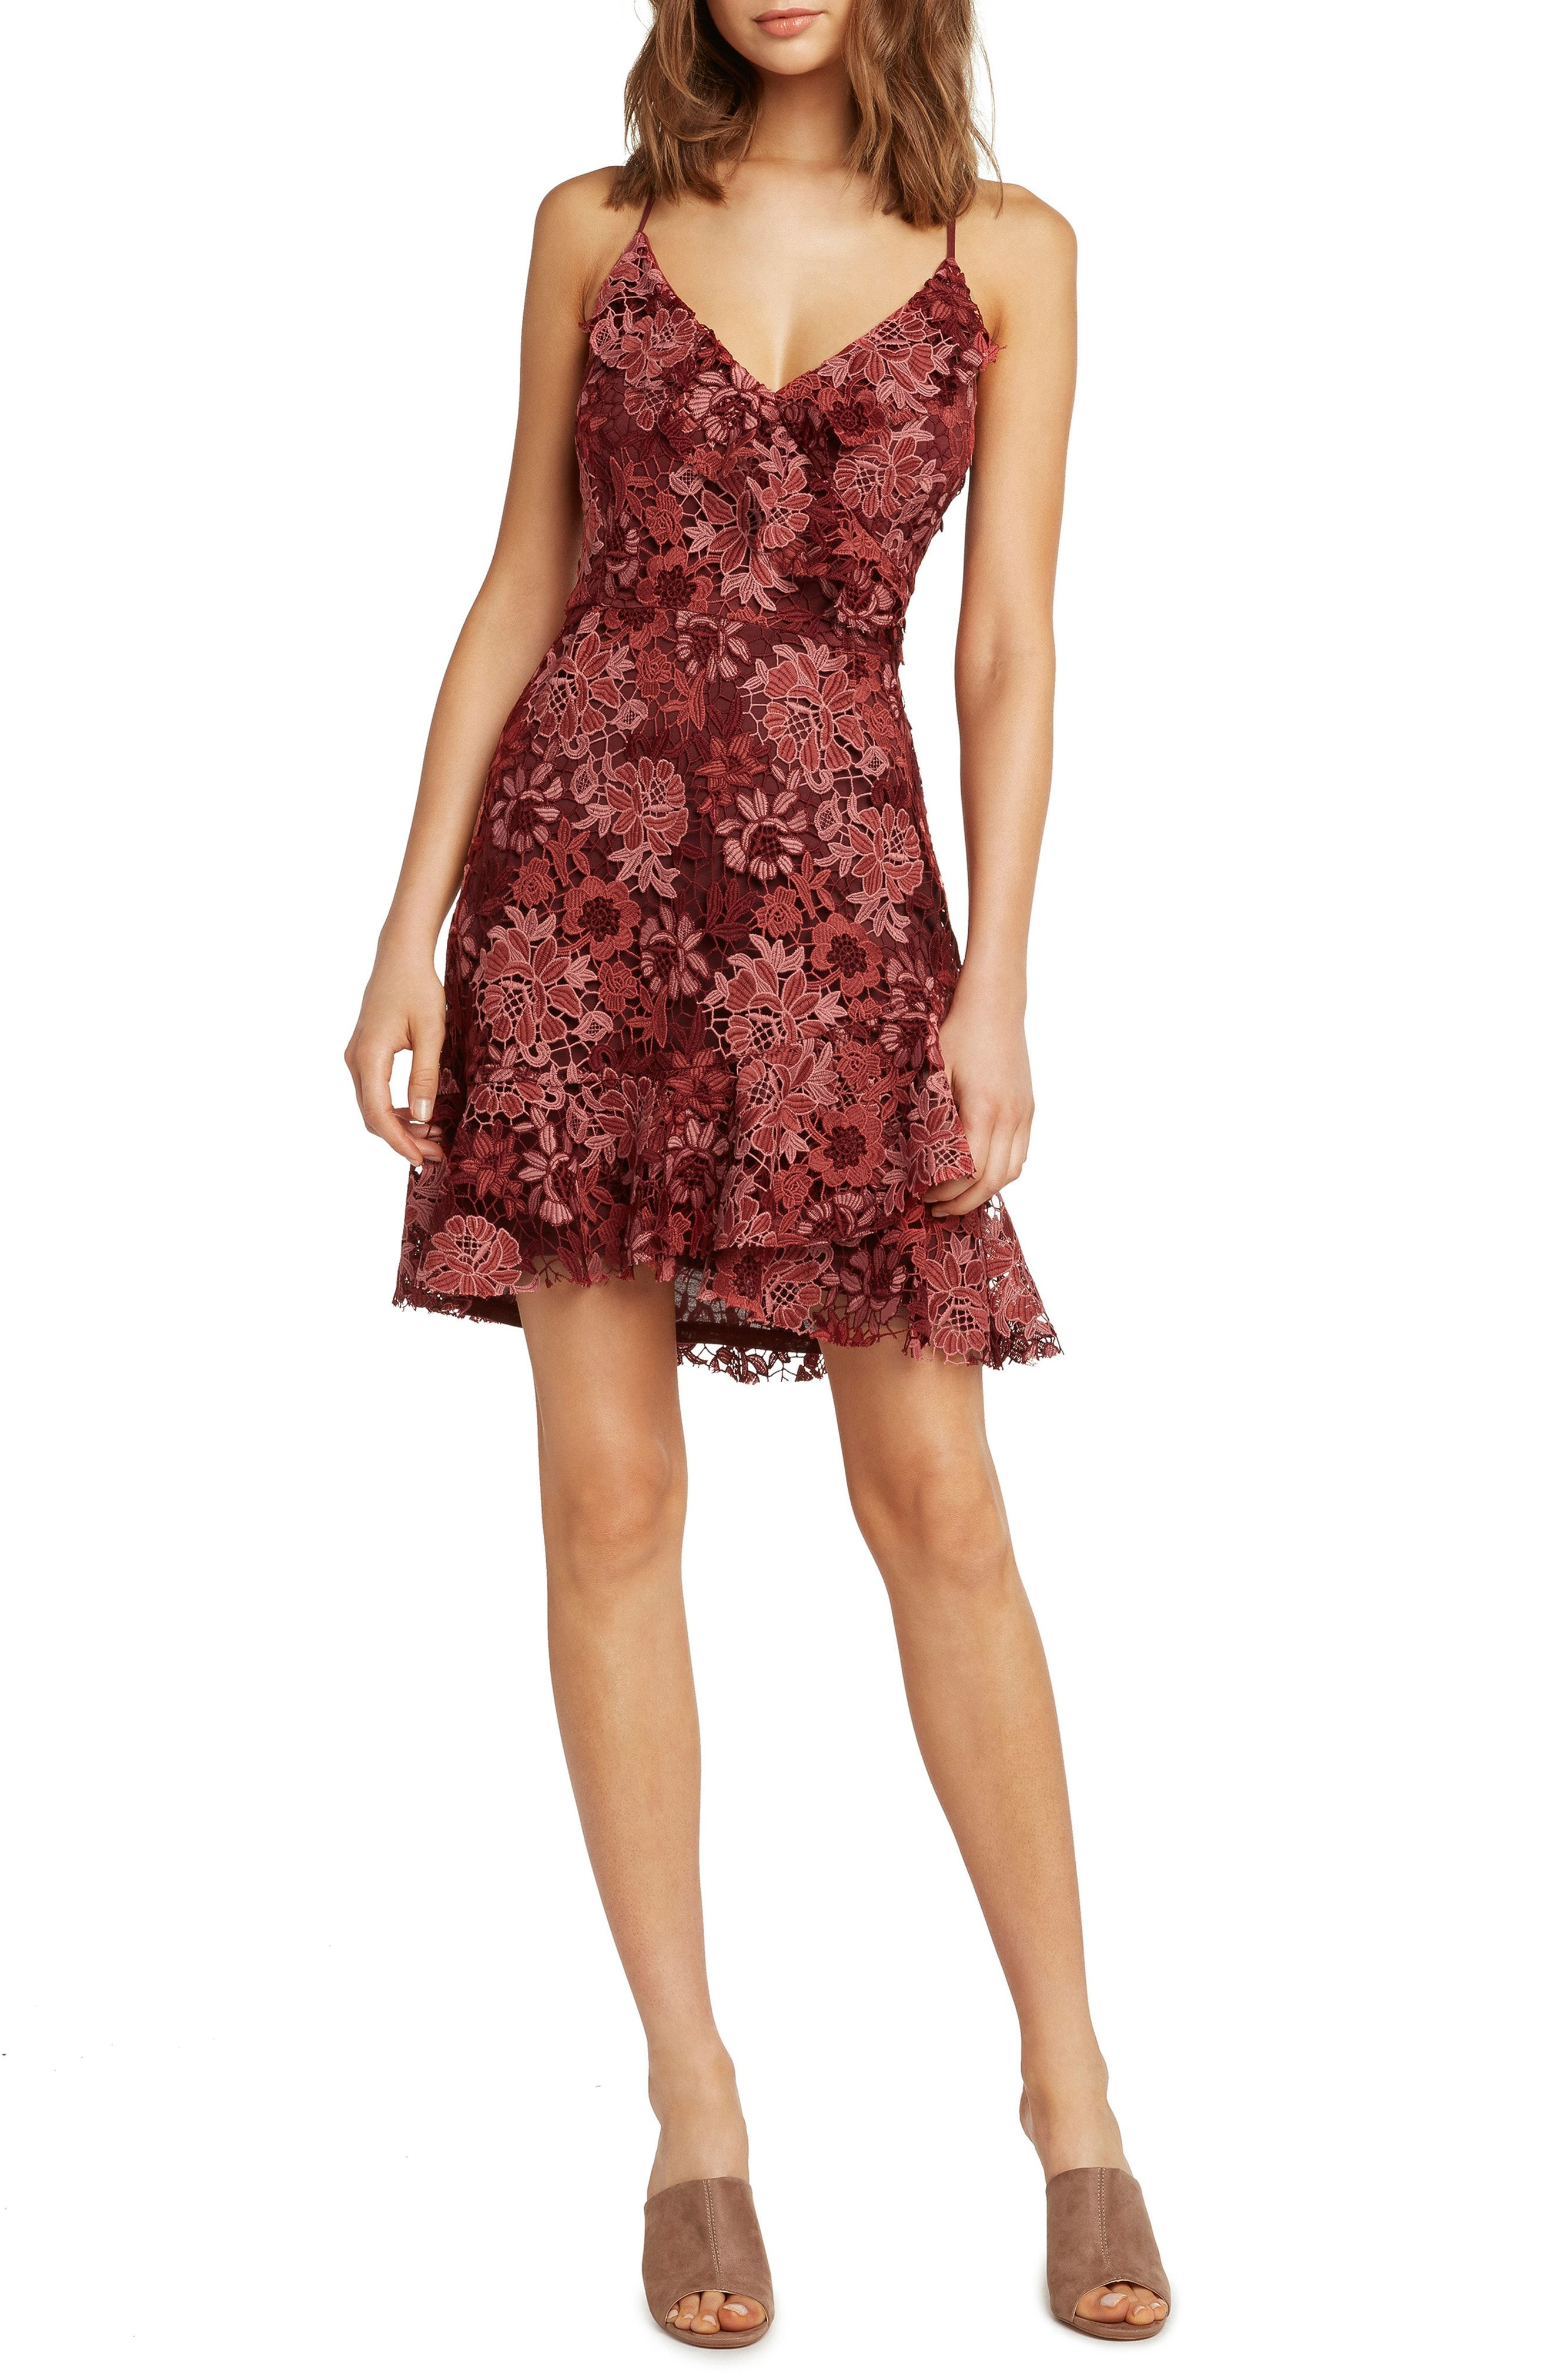 Fall wedding guest dresses for every budget wedding guest dress